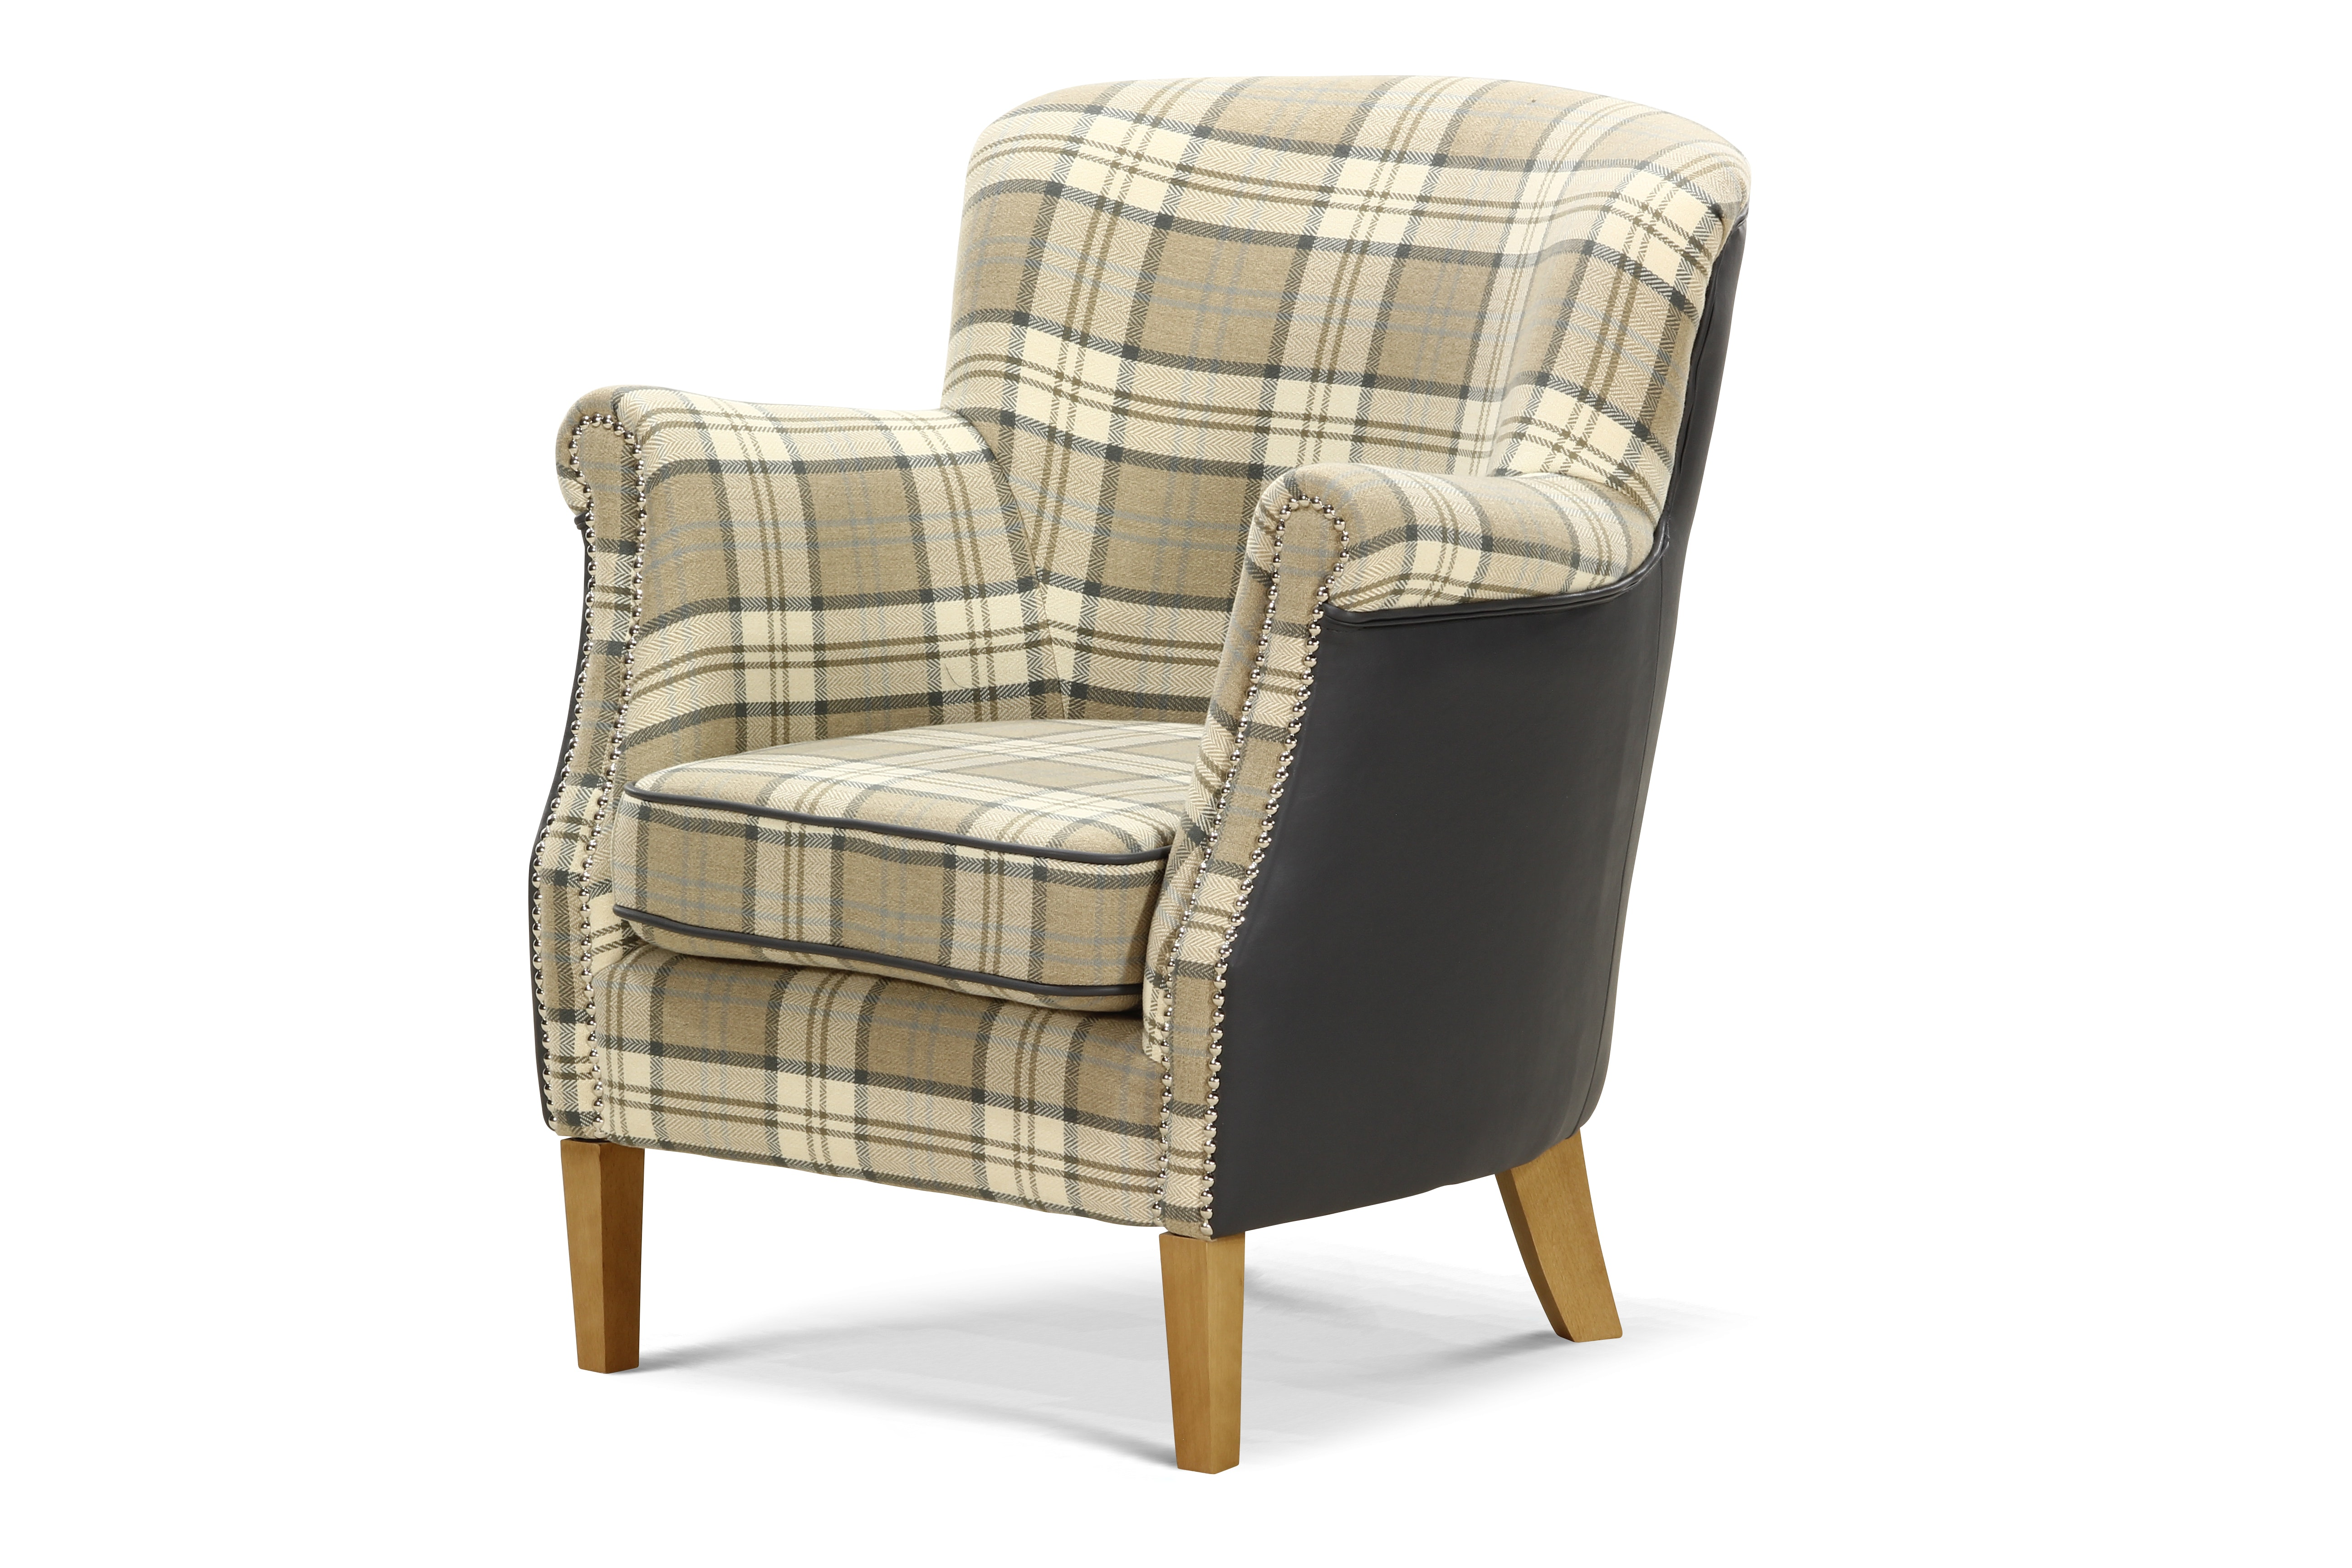 Lincoln Bedroom chair